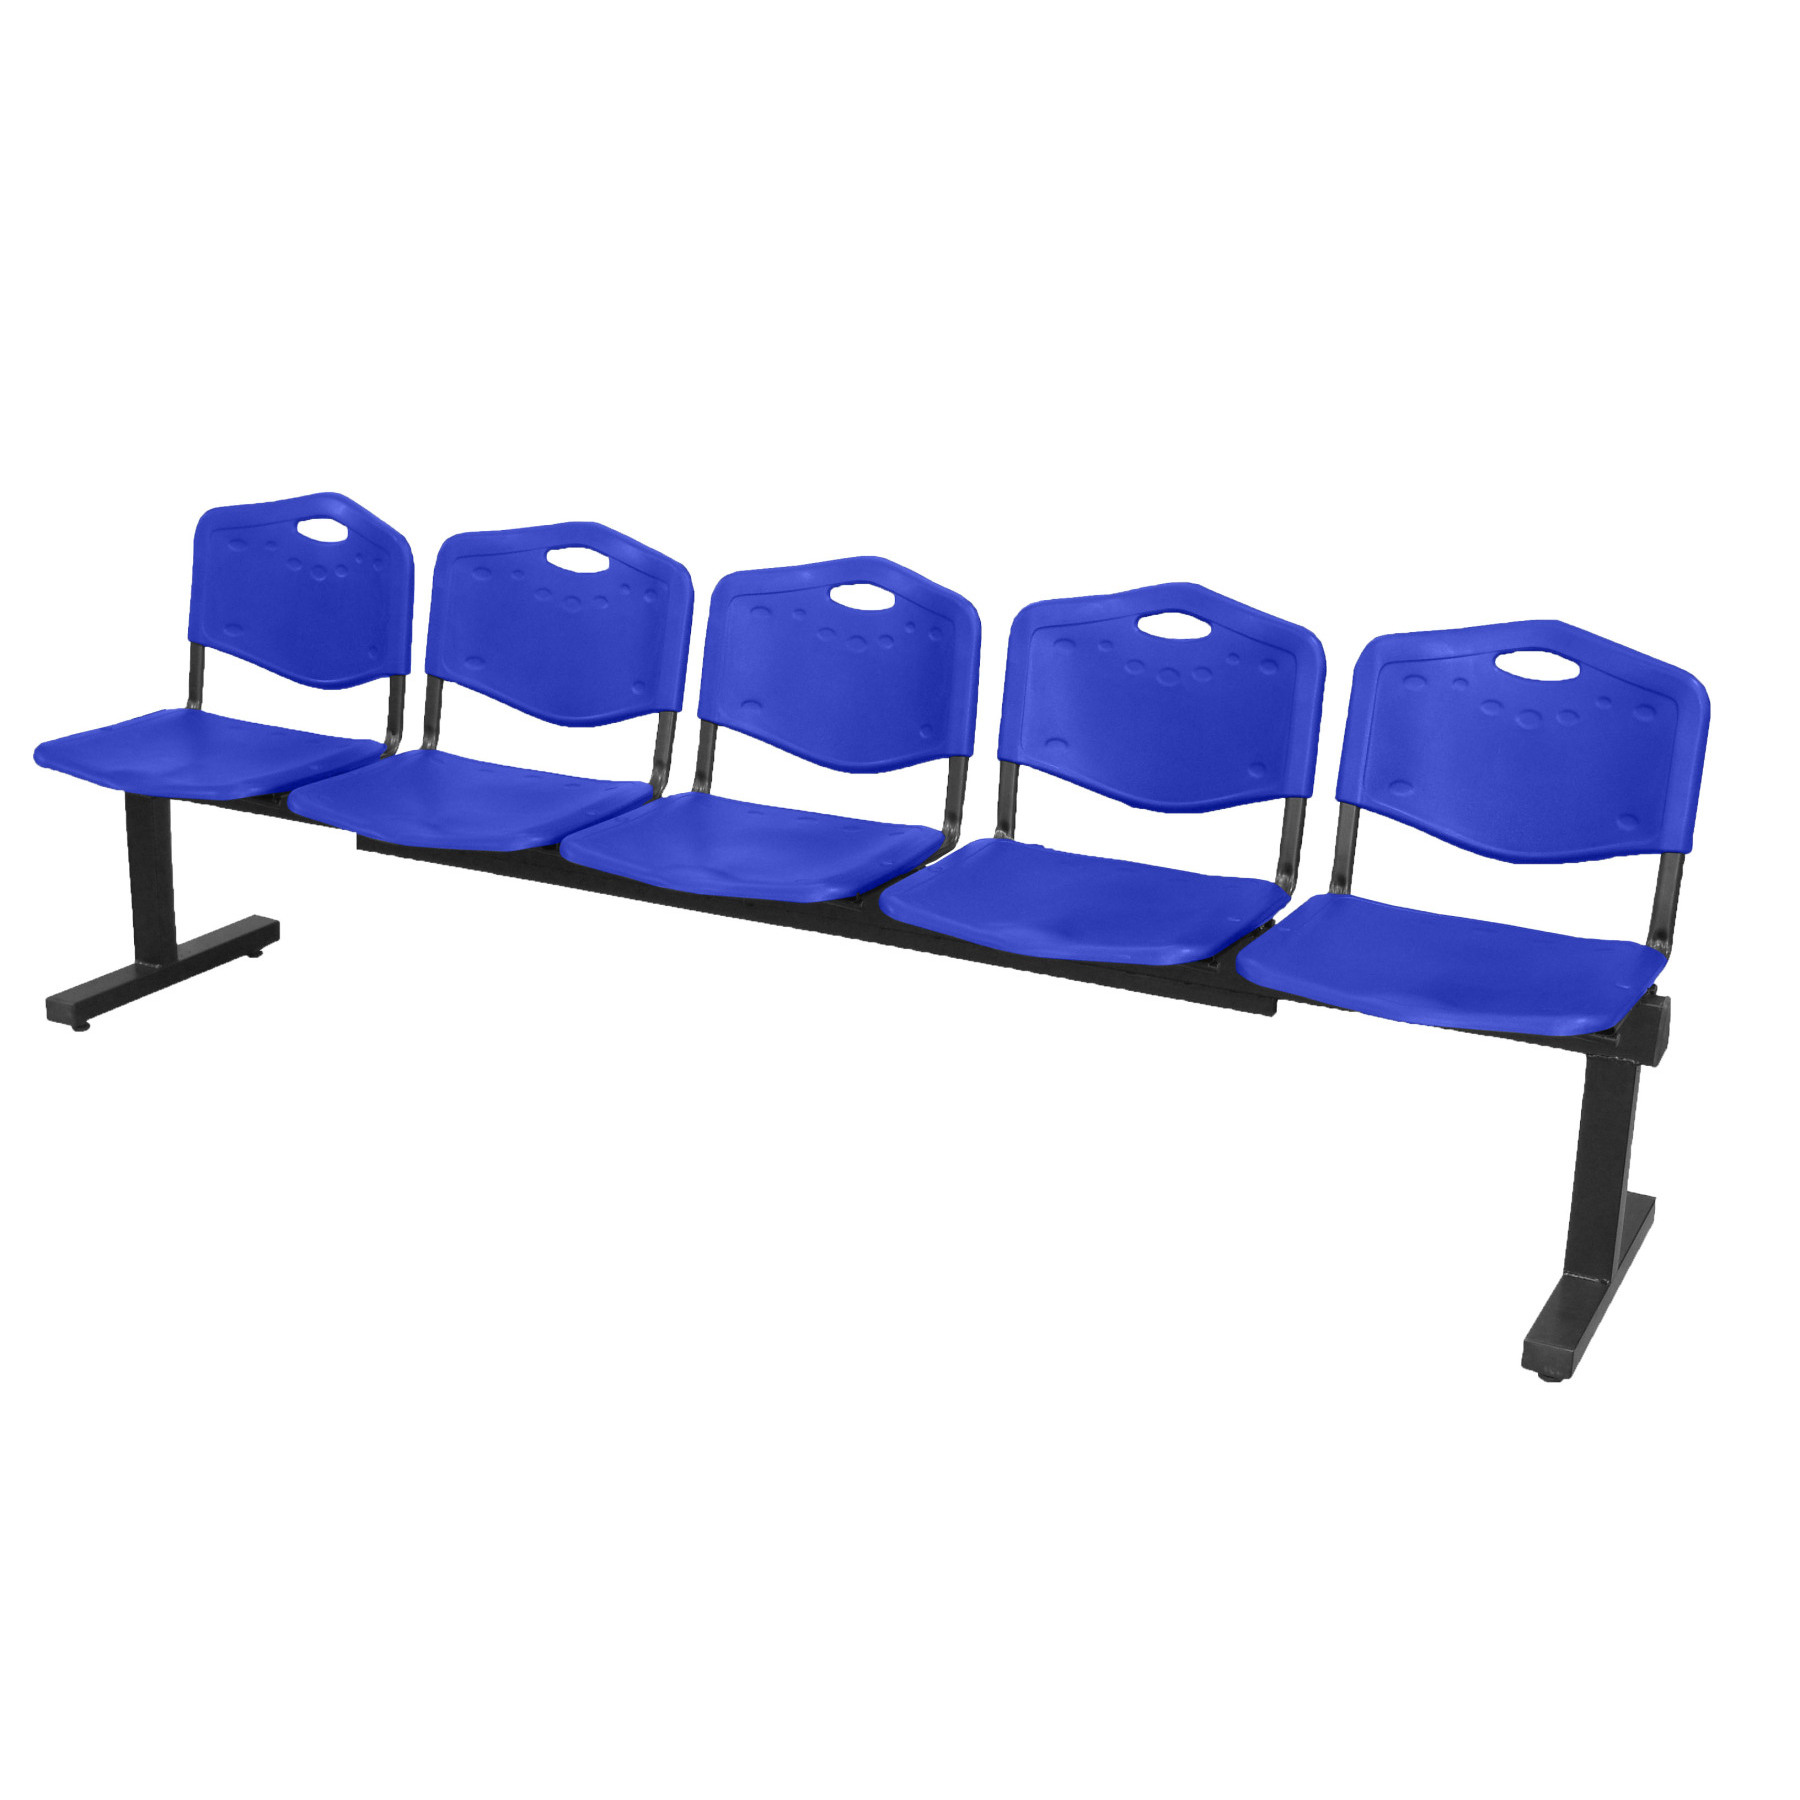 Bench Waiting Five Seater And Iron's Structure In Black Color Up Seat And Backstop In PVC Color Blue Taphole And